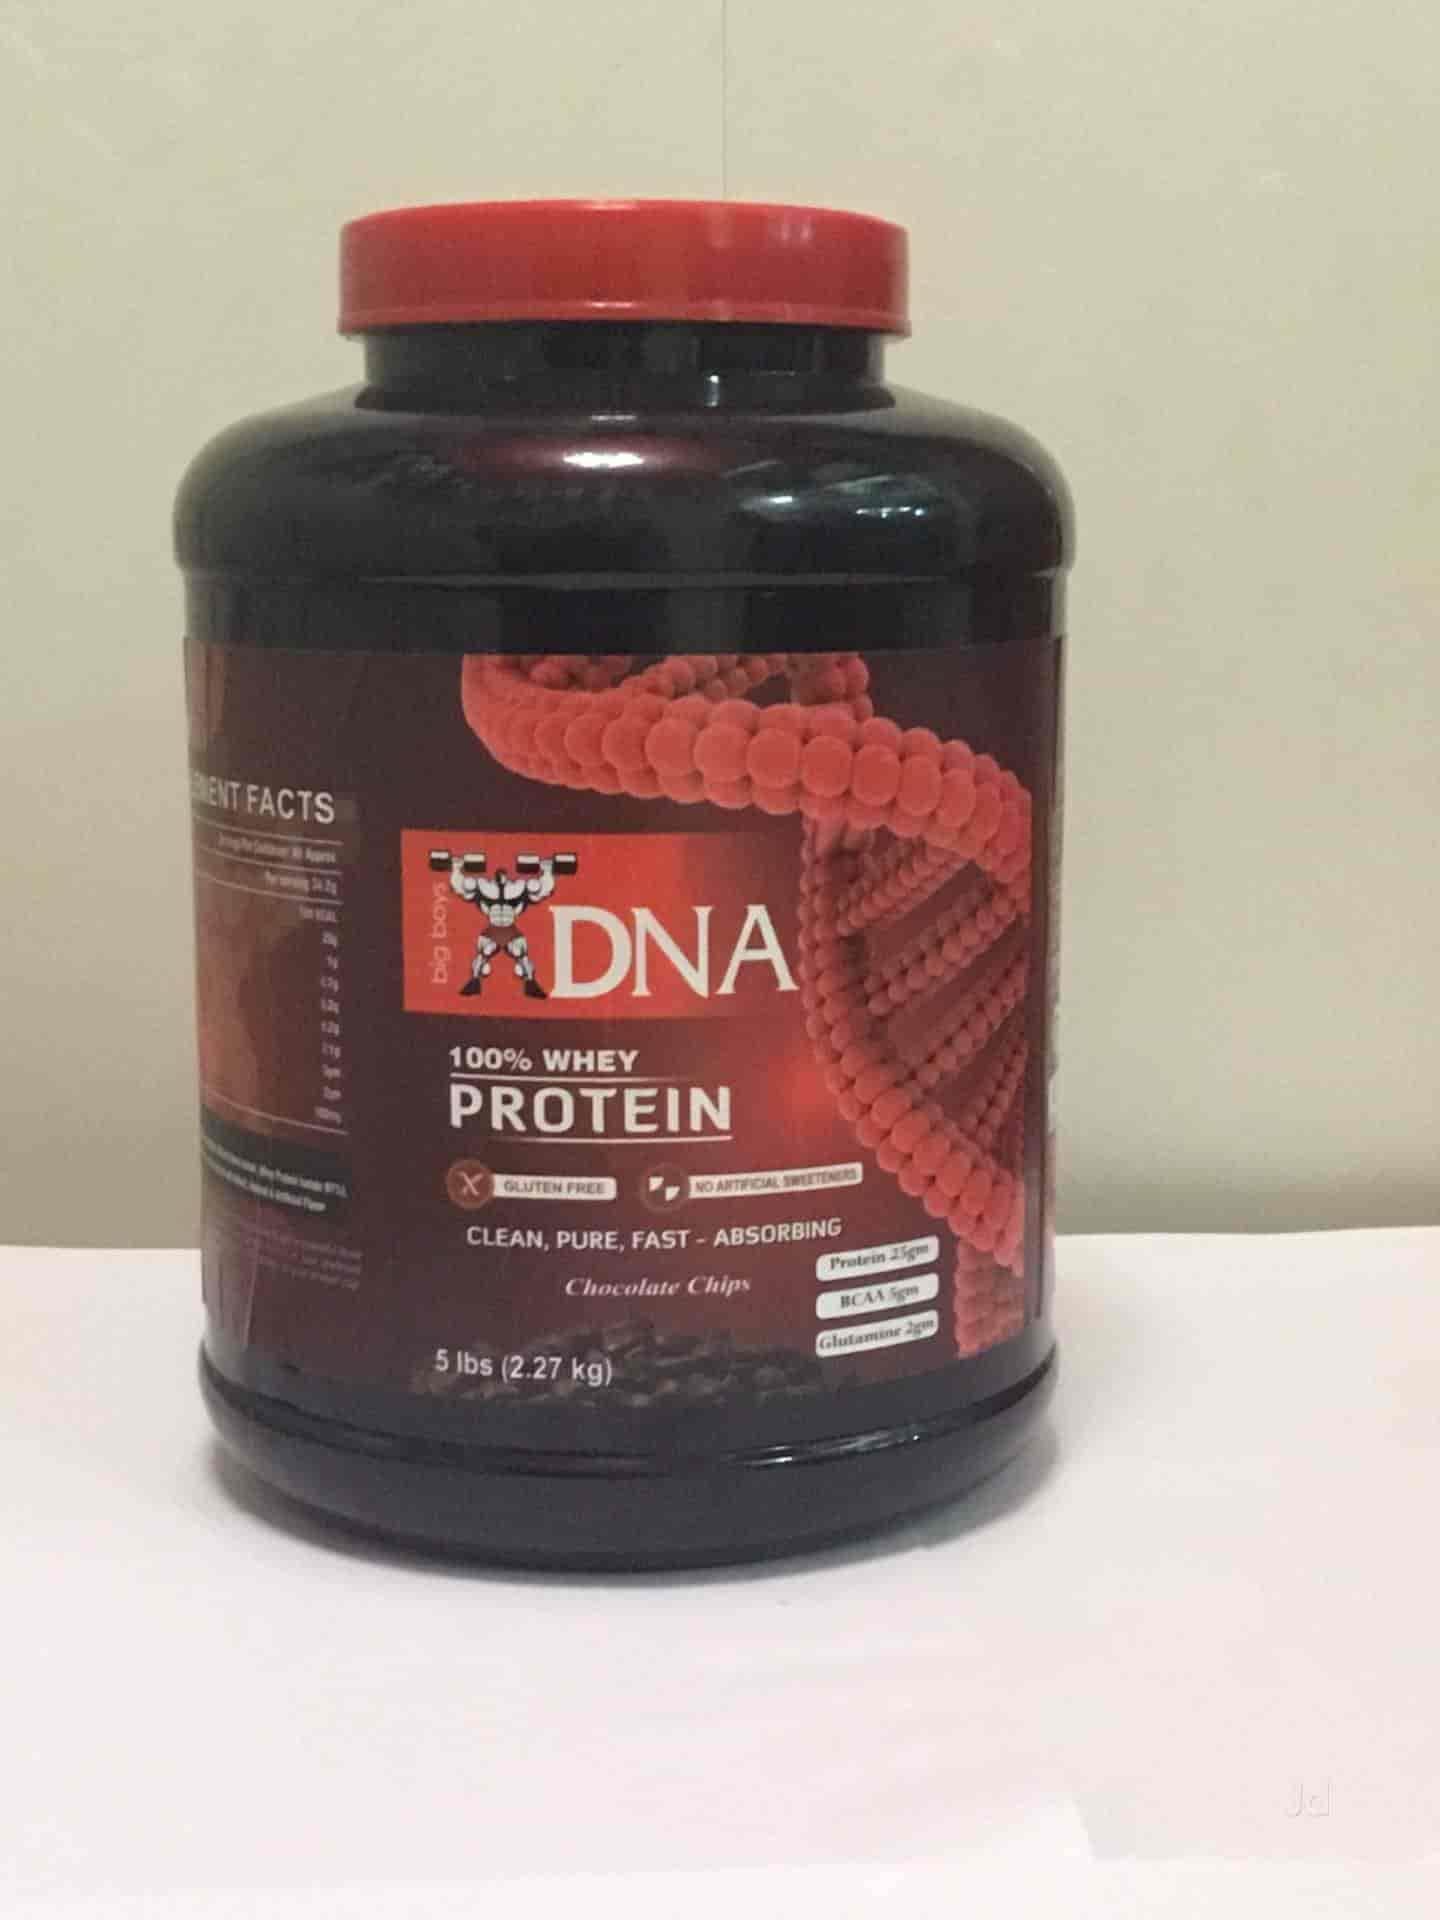 Protein Supplement Products - Big Boys Dna Nutrition Photos, Sector 22d, Chandigarh - Health ...